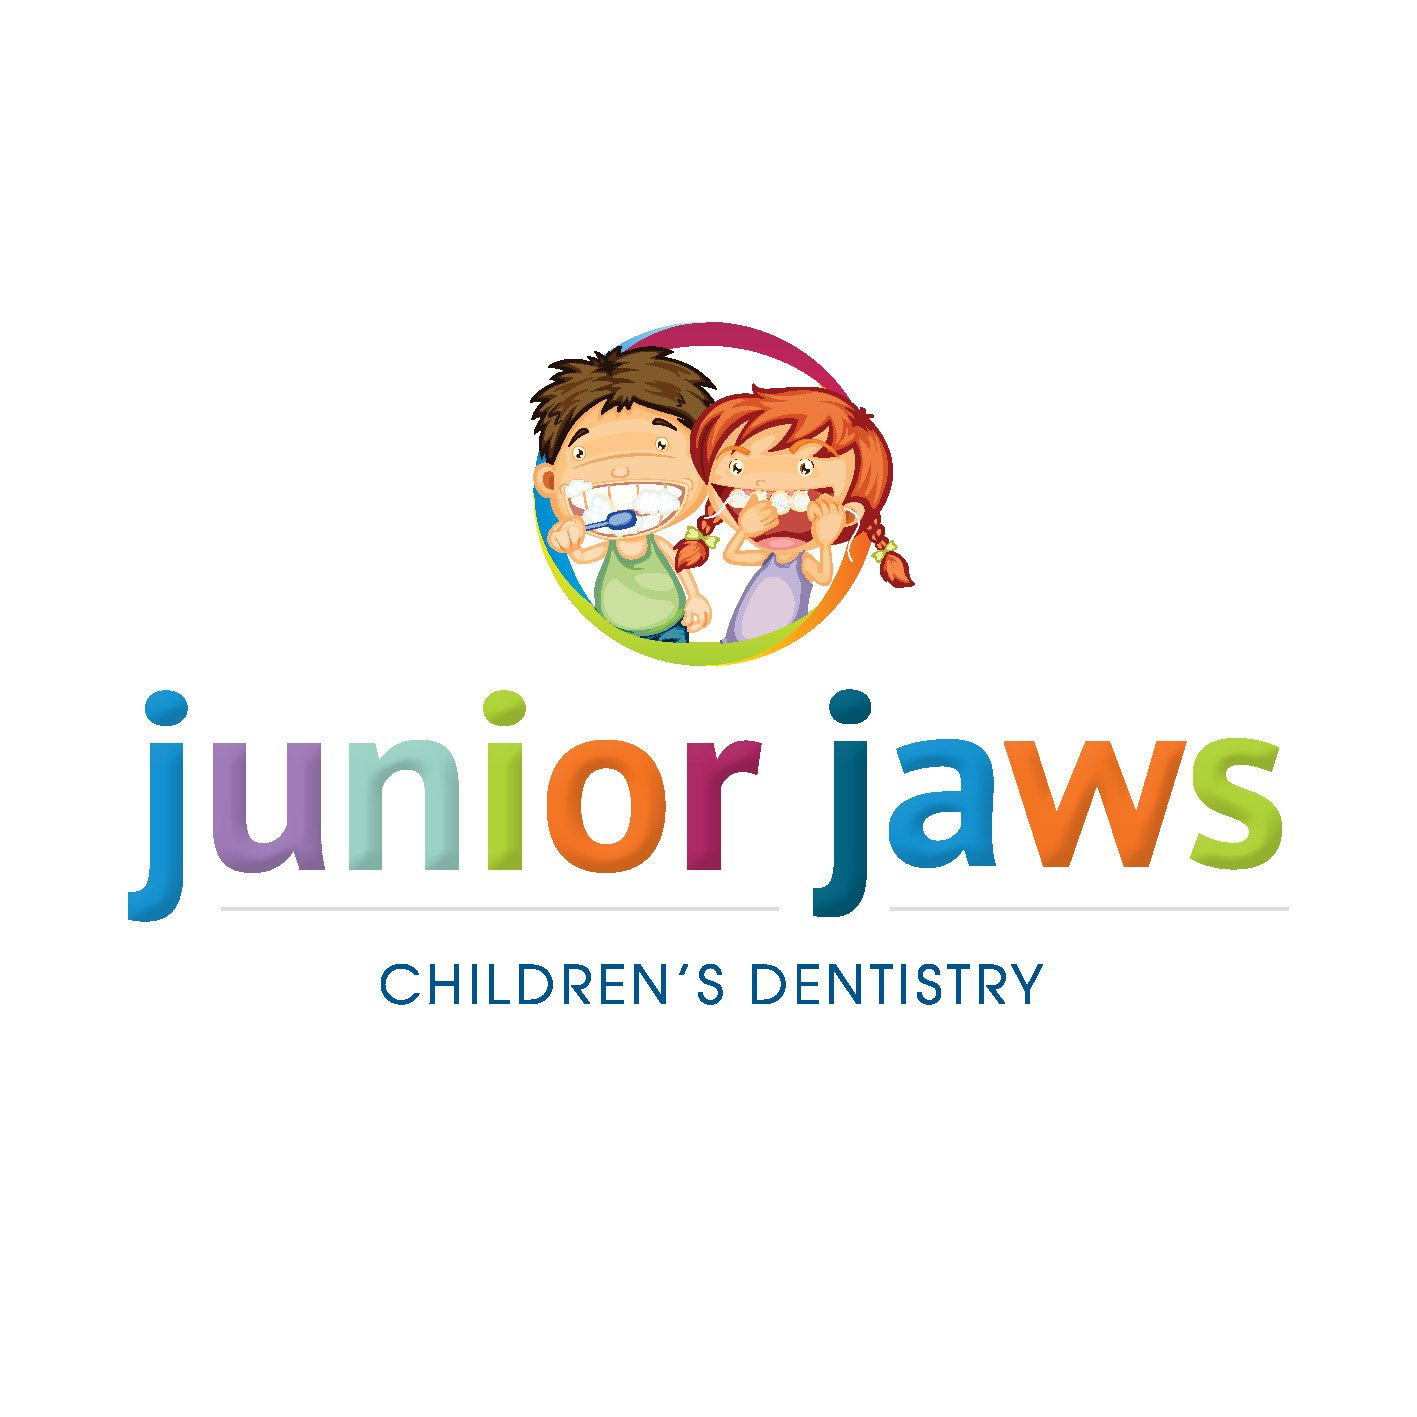 TD Dental - Junior Jaws Childrens Dental Clinic Logo Design